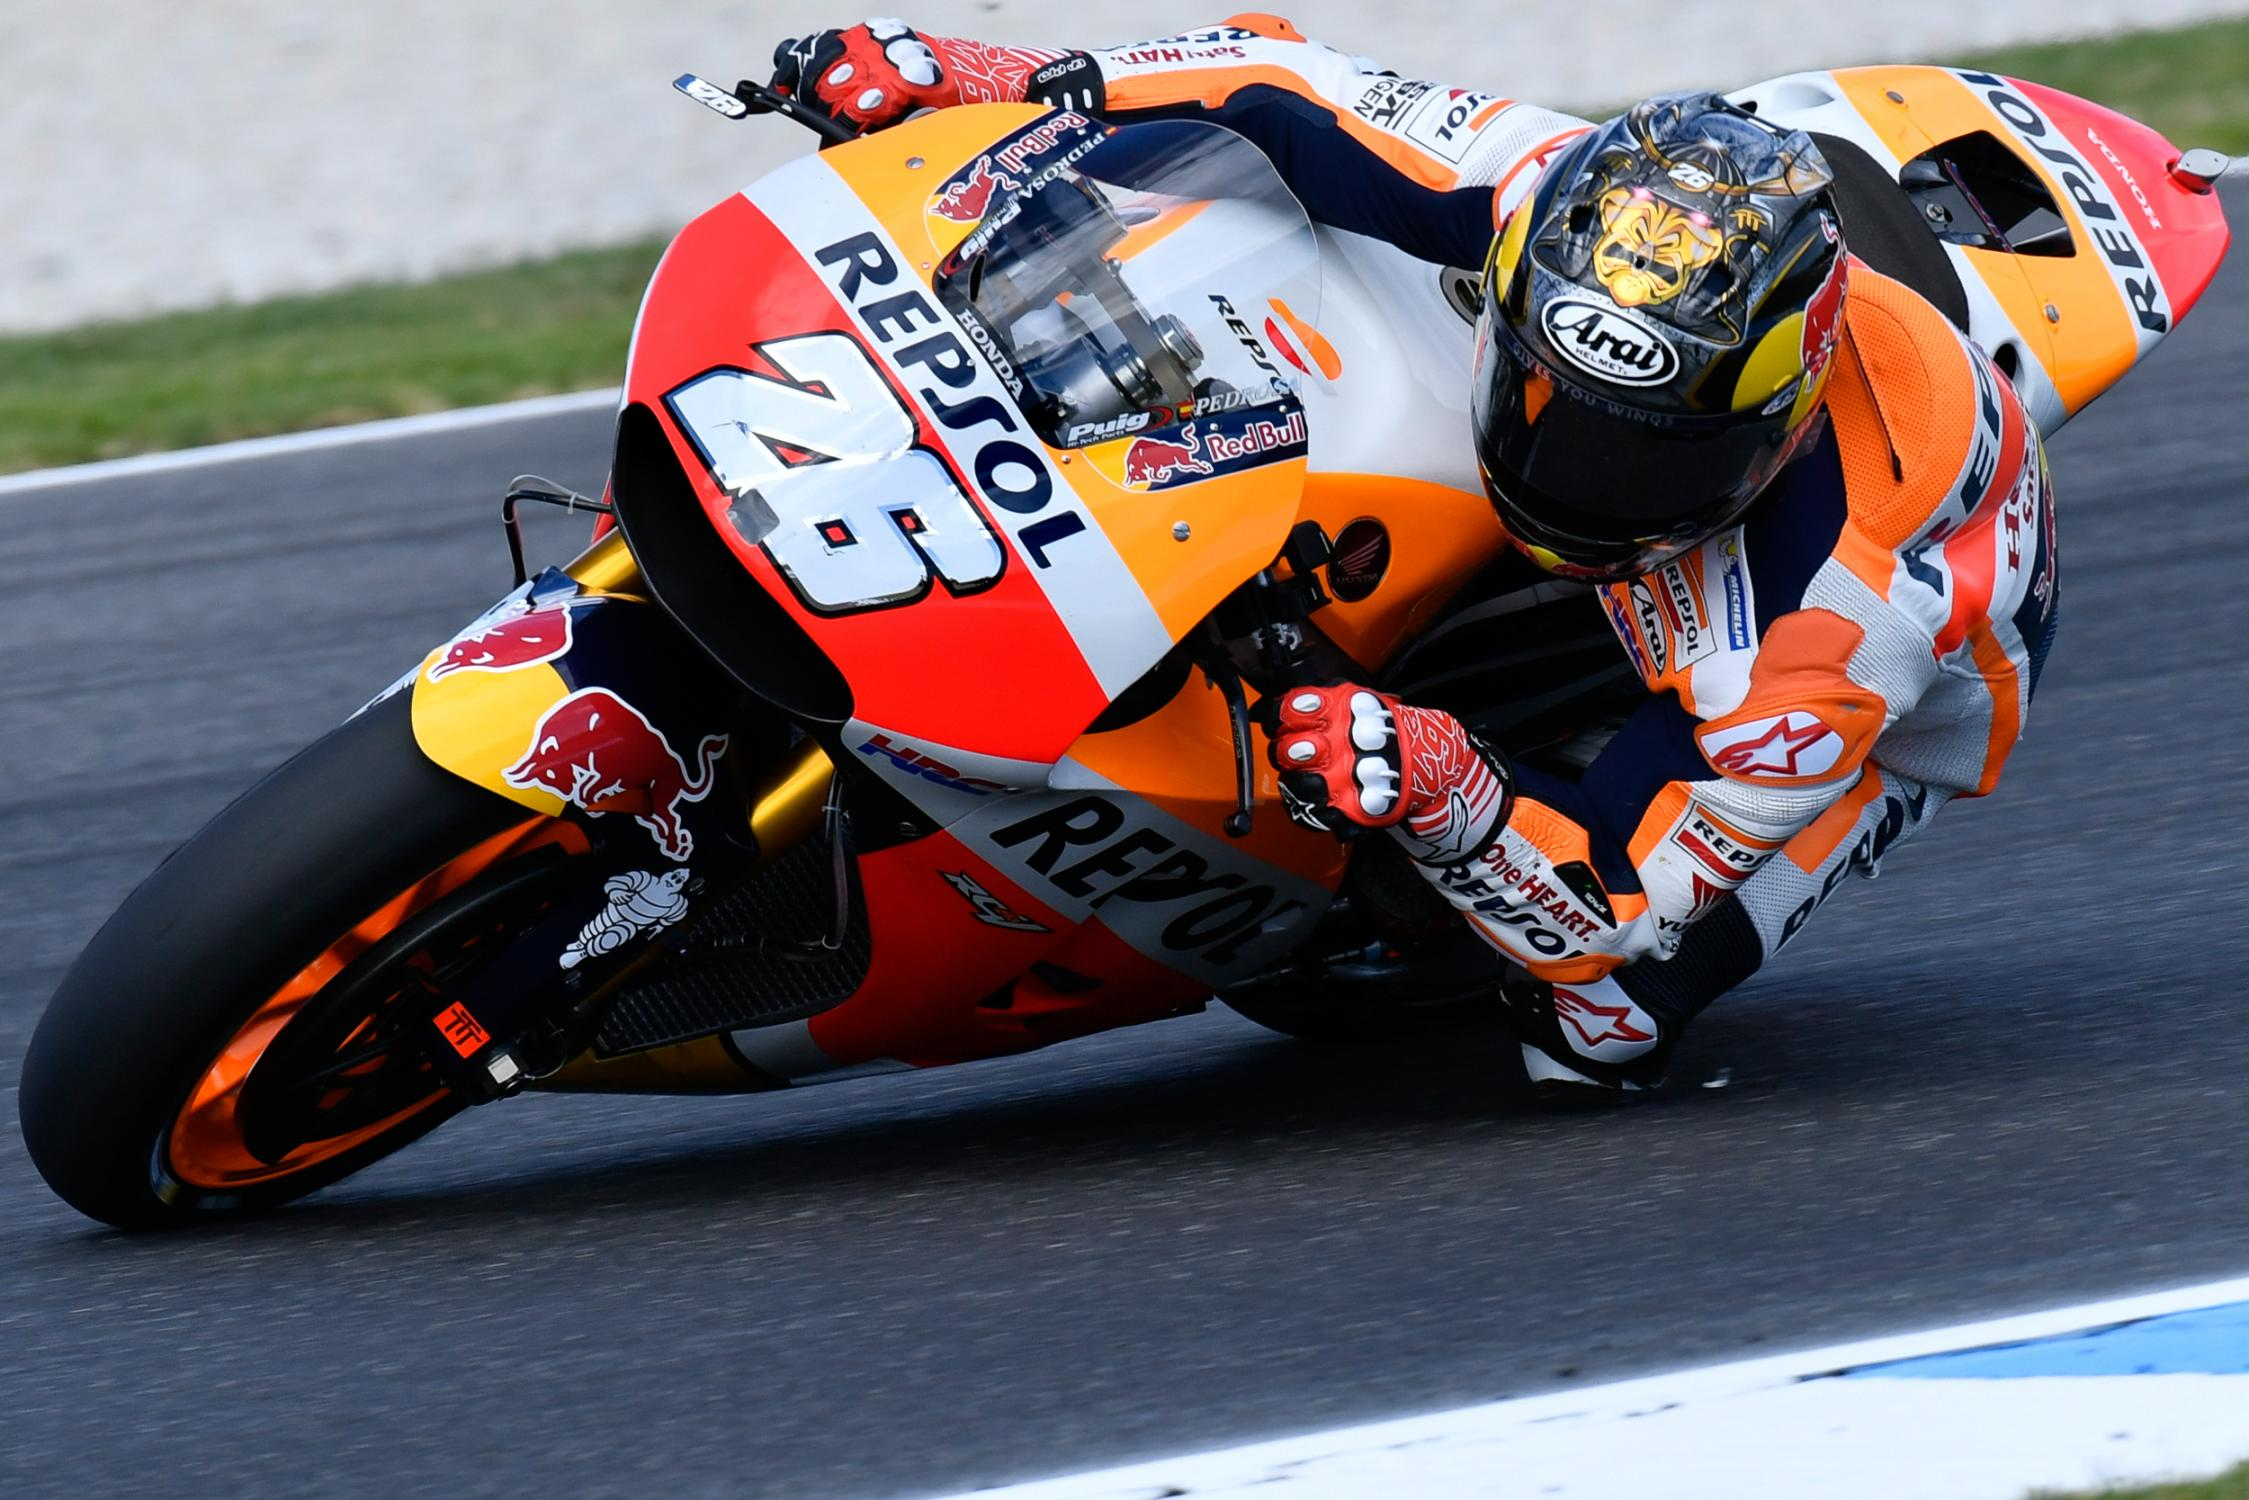 [MotoGP] Test Phillip Island 26-dani-pedrosa-esp_br10438.gallery_full_top_fullscreen